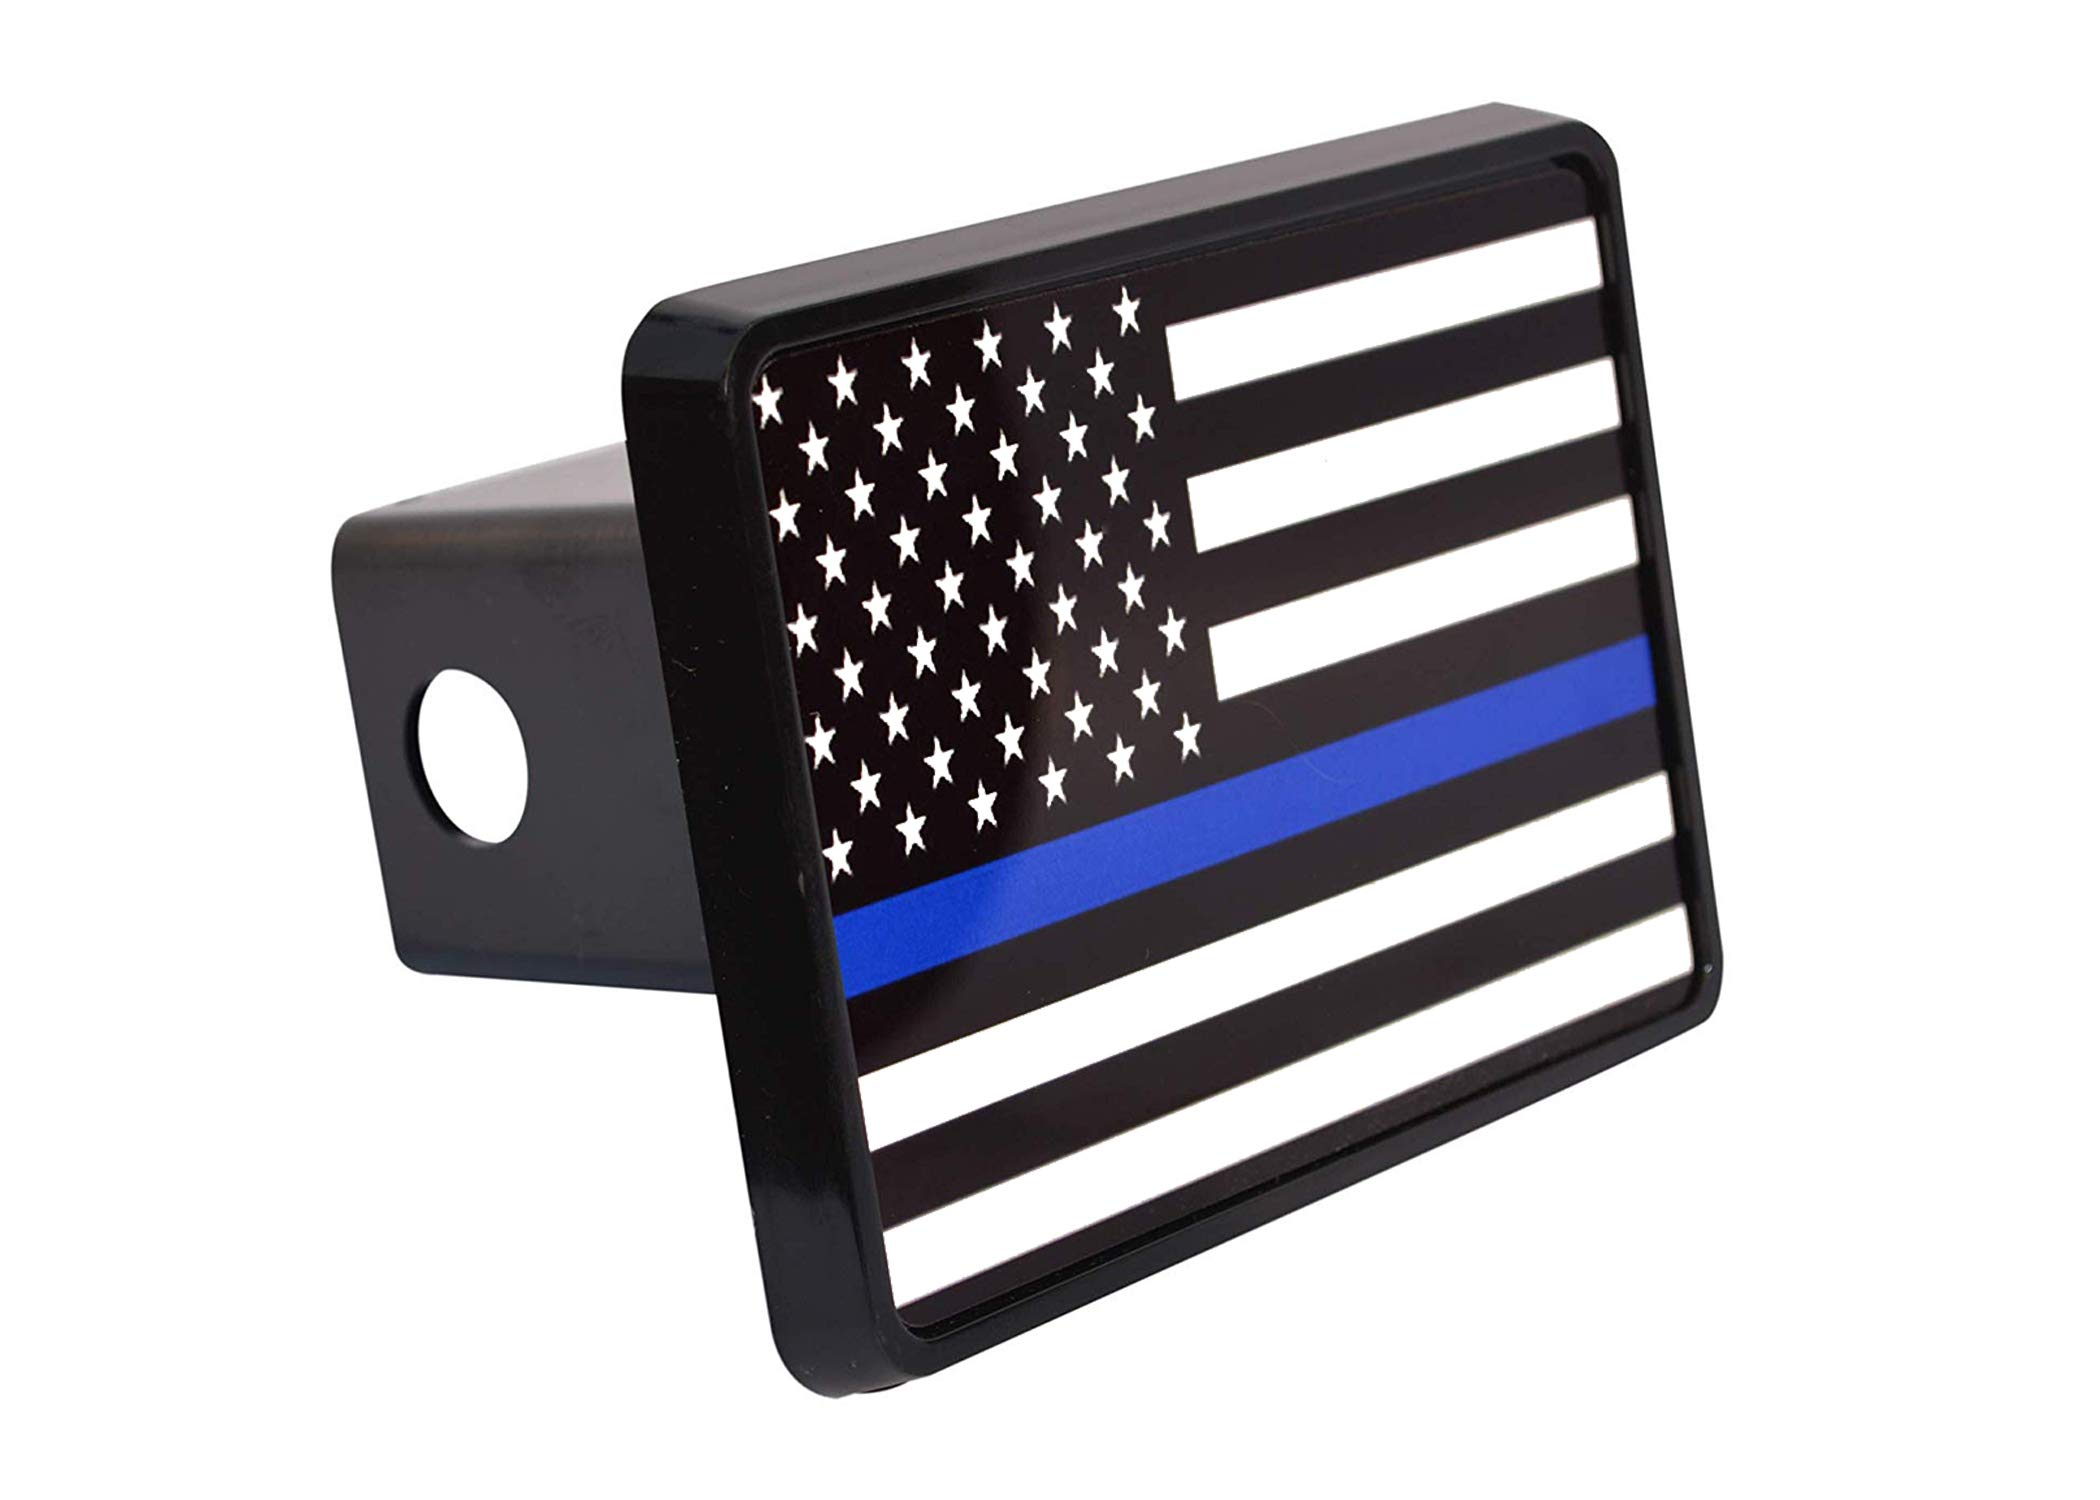 Thin Blue Line Flag Trailer Hitch Cover Plug US Blue Lives Matter Police Officer Law Enforcement by Rogue River Tactical